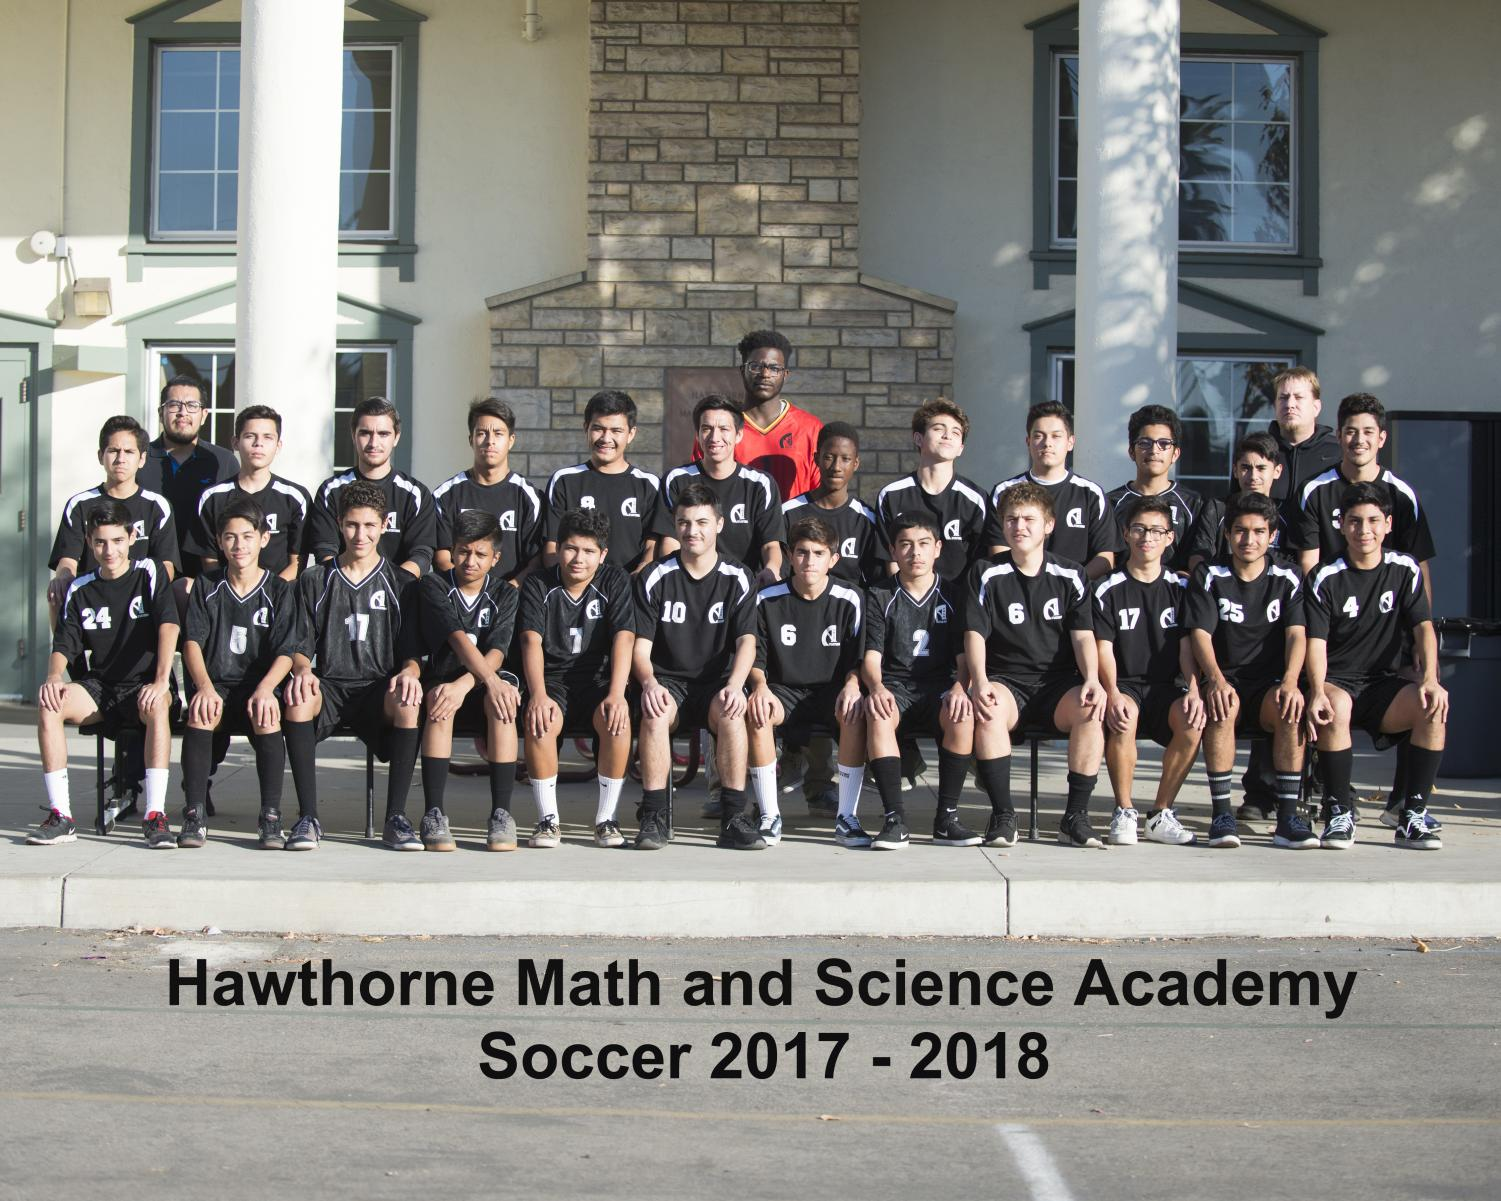 Boys soccer taking their team pictures for the 2017-2018 season (Photo Source: Mr. Launius).